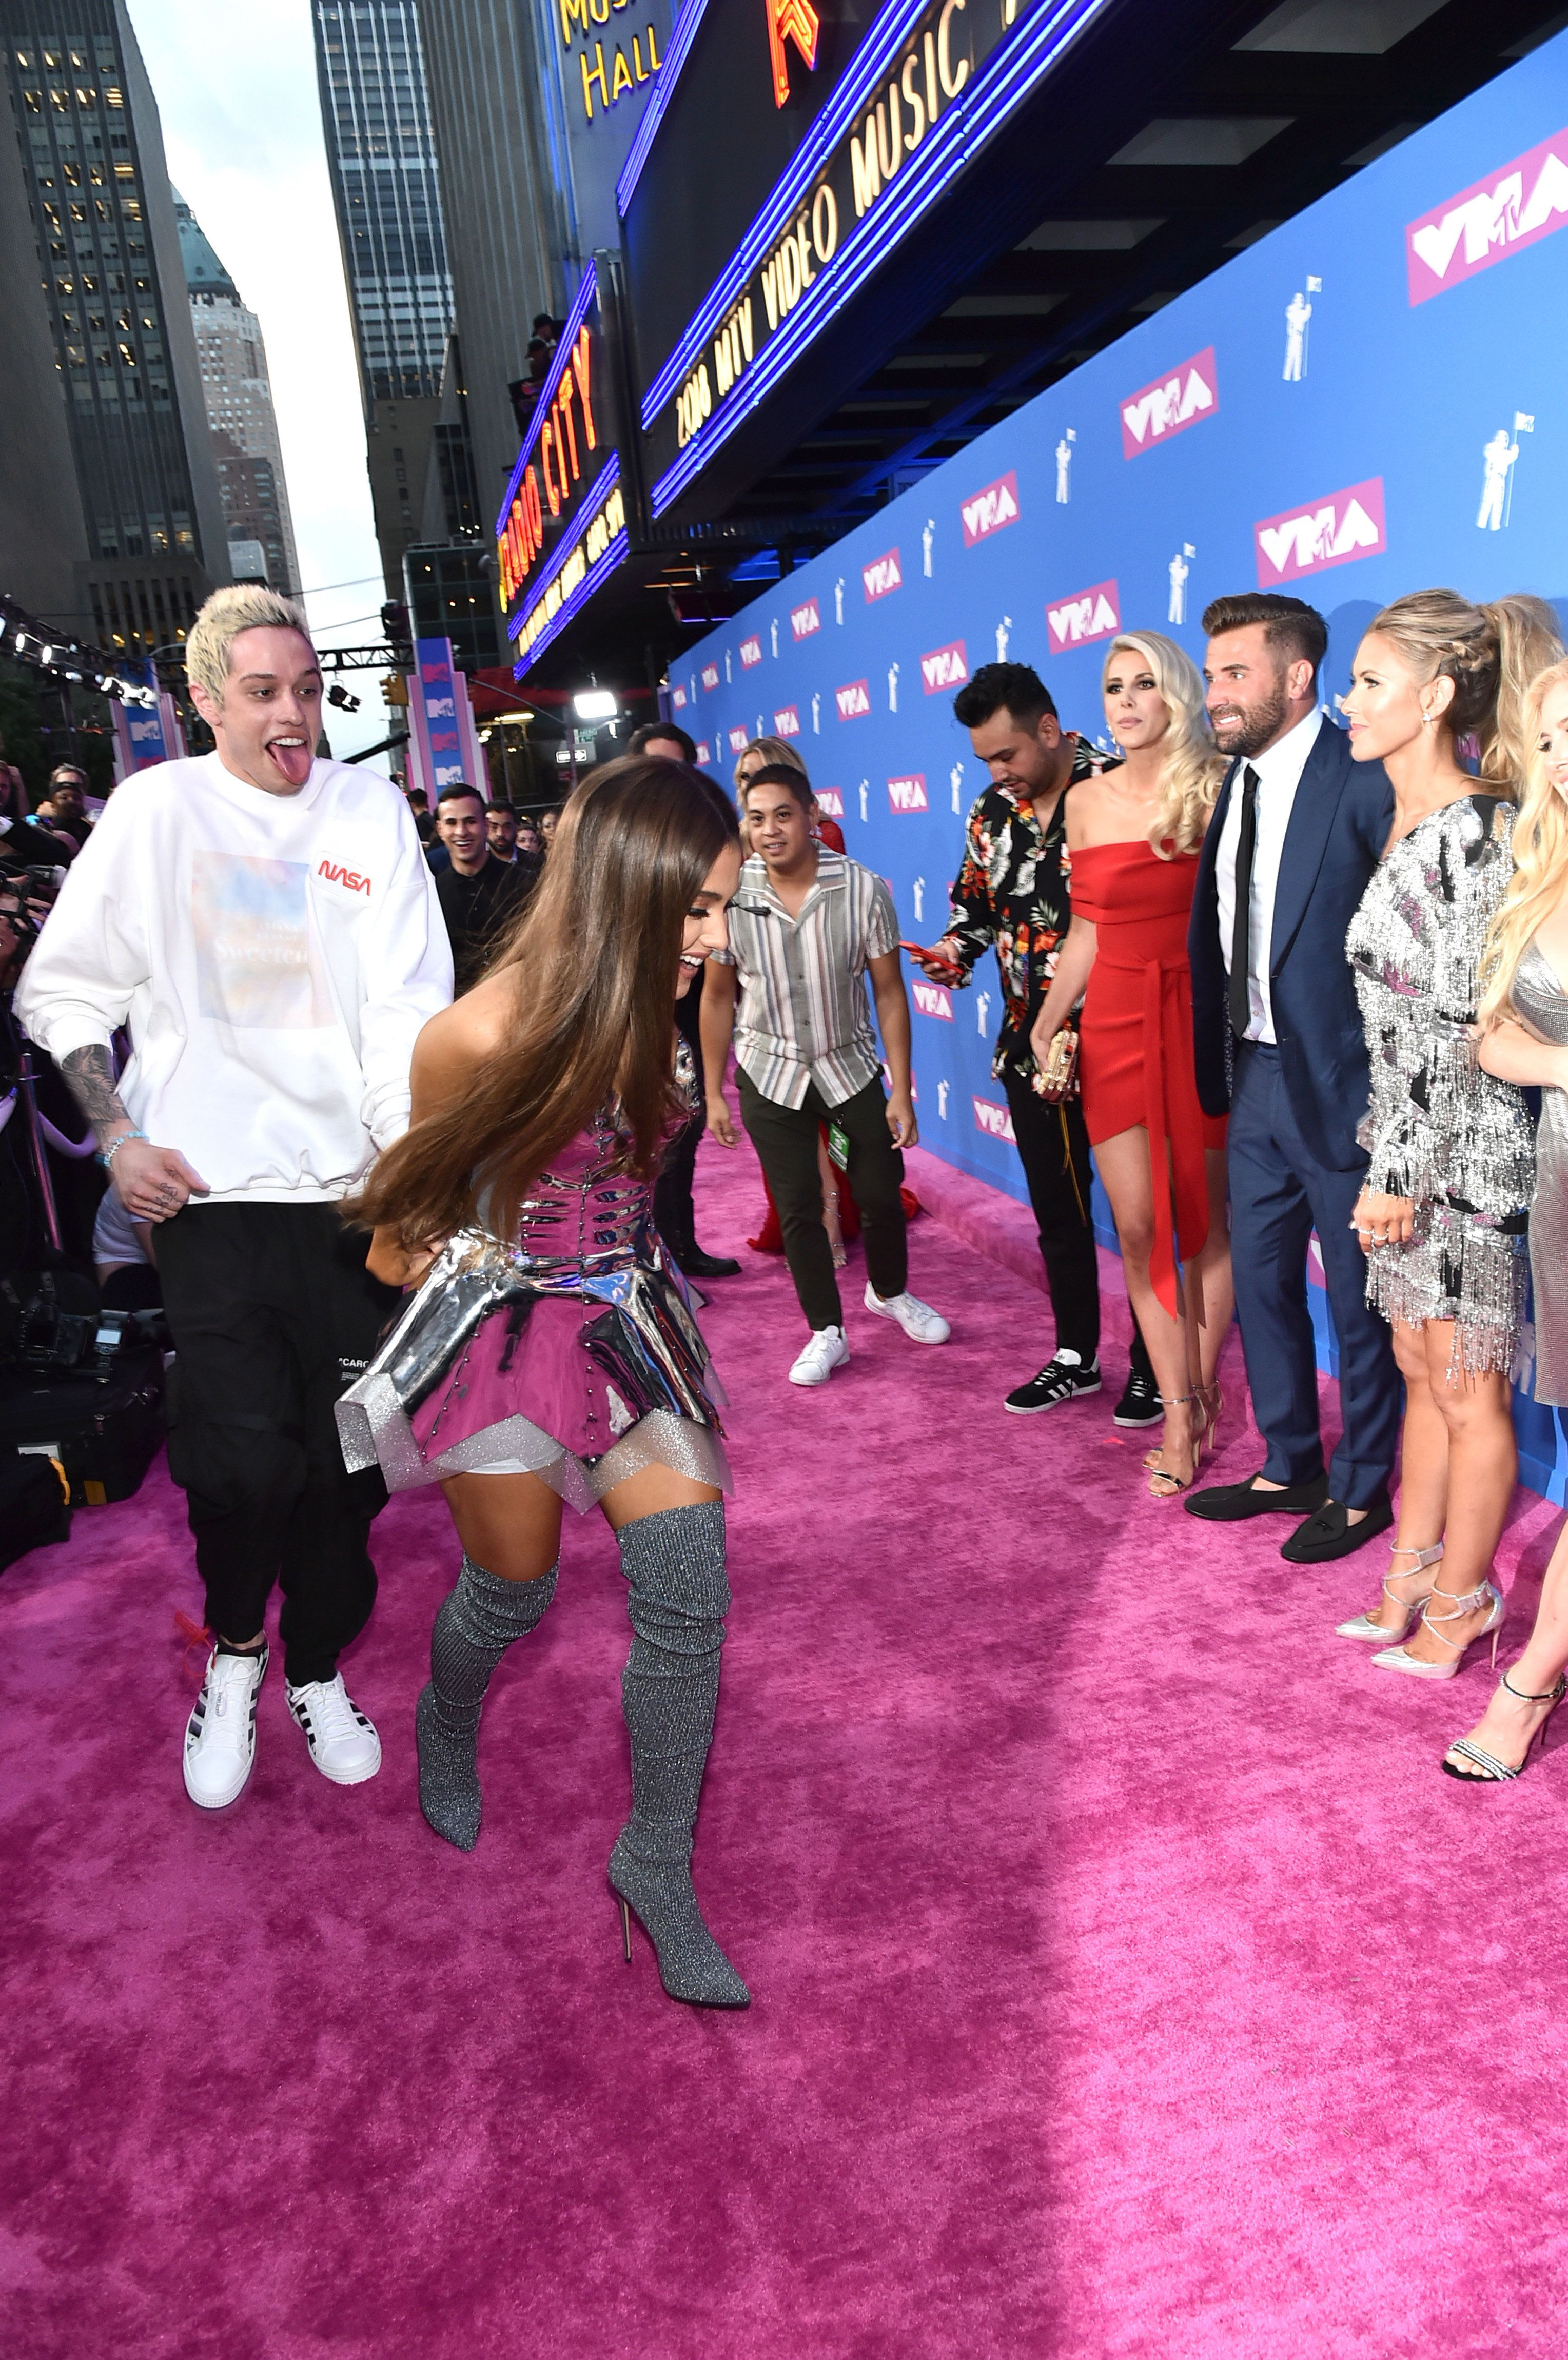 NEW YORK, NY - AUGUST 20:  Pete Davidson and Ariana Grande attend the 2018 MTV Video Music Awards at Radio City Music Hall on August 20, 2018 in New York City.  (Photo by Mike Coppola/Getty Images for MTV)